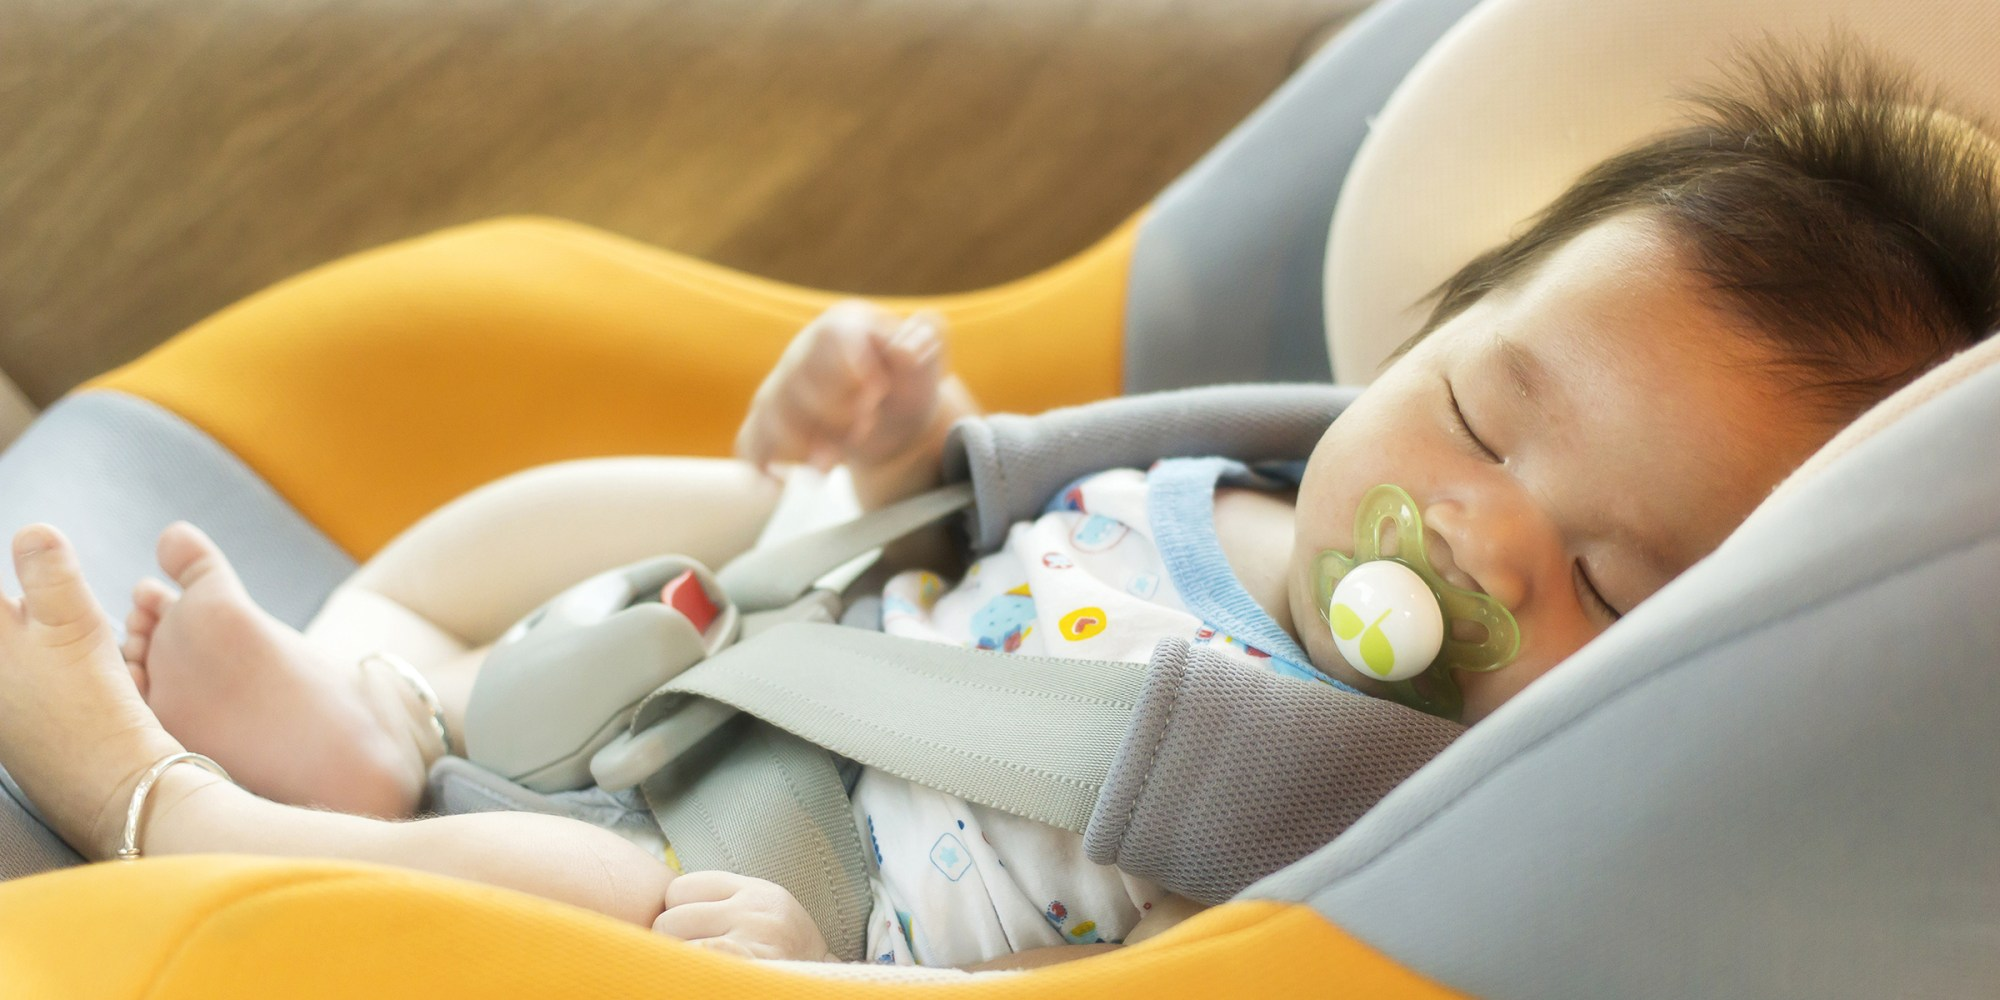 Babies shouldn't sleep in car seats when not traveling